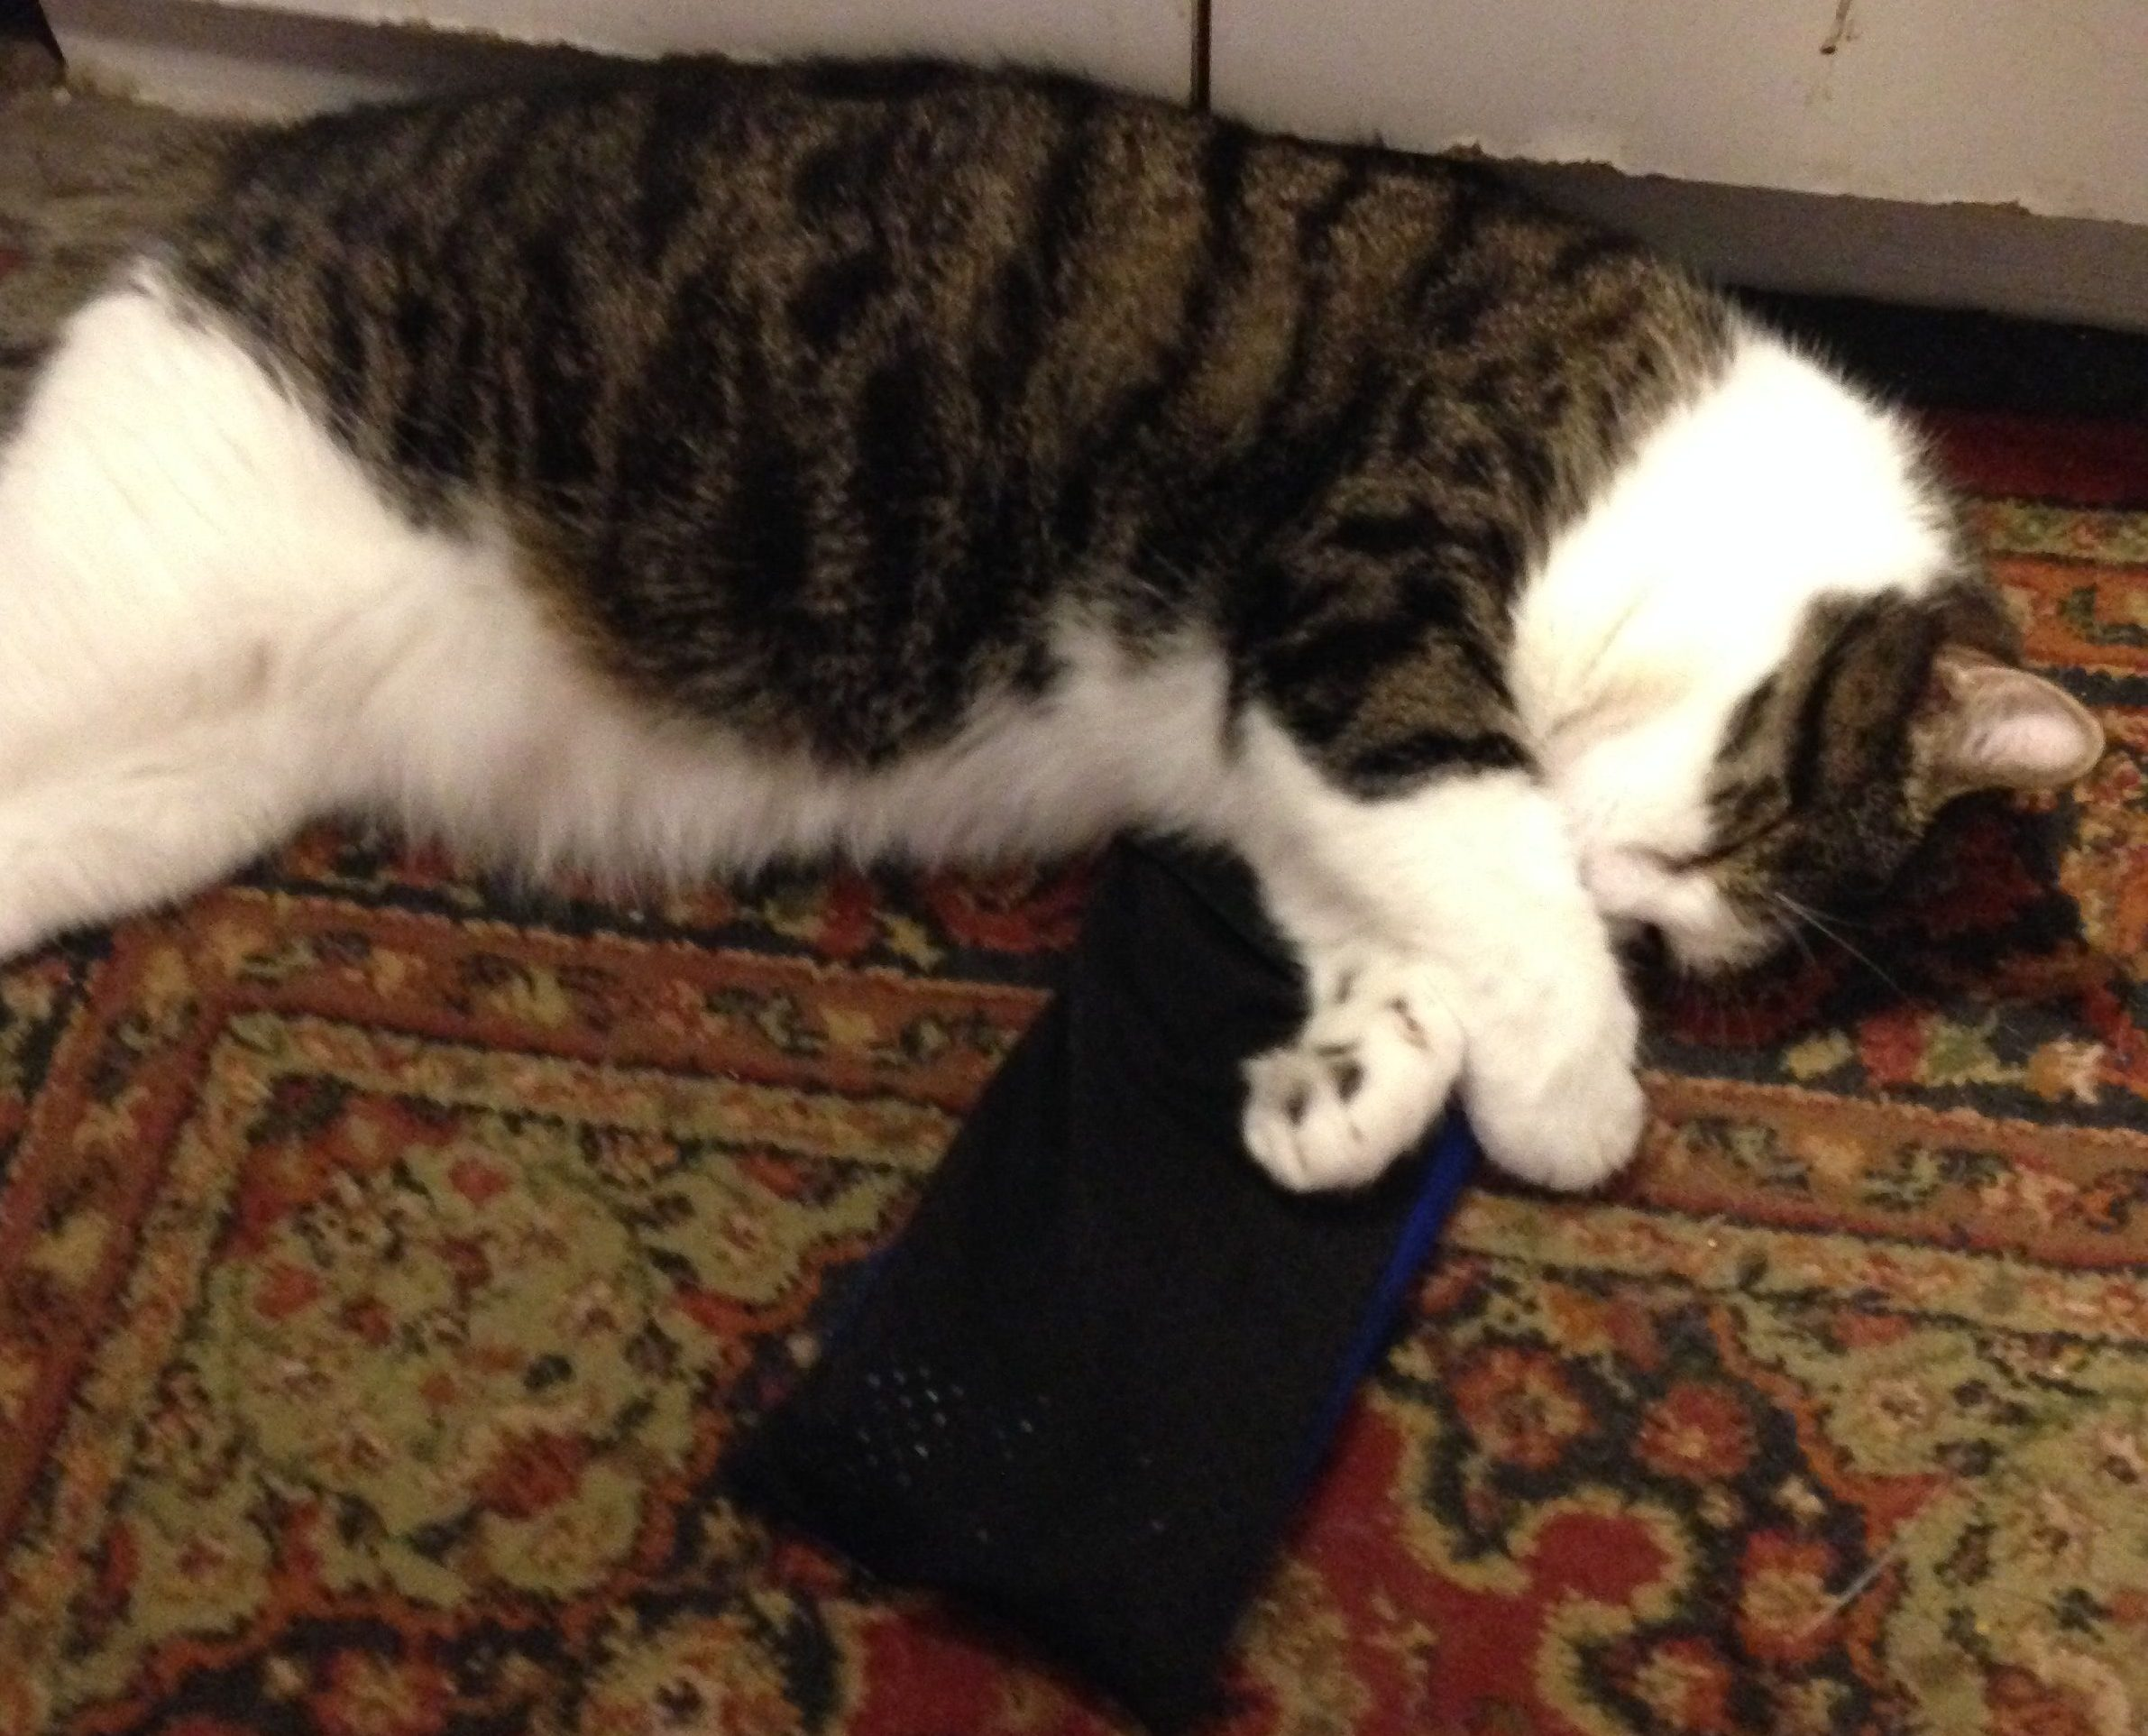 The picture shows His Holiness St. Ray the Cat snoozing with his paws on an ice pack. He is very cute and fuzzy.